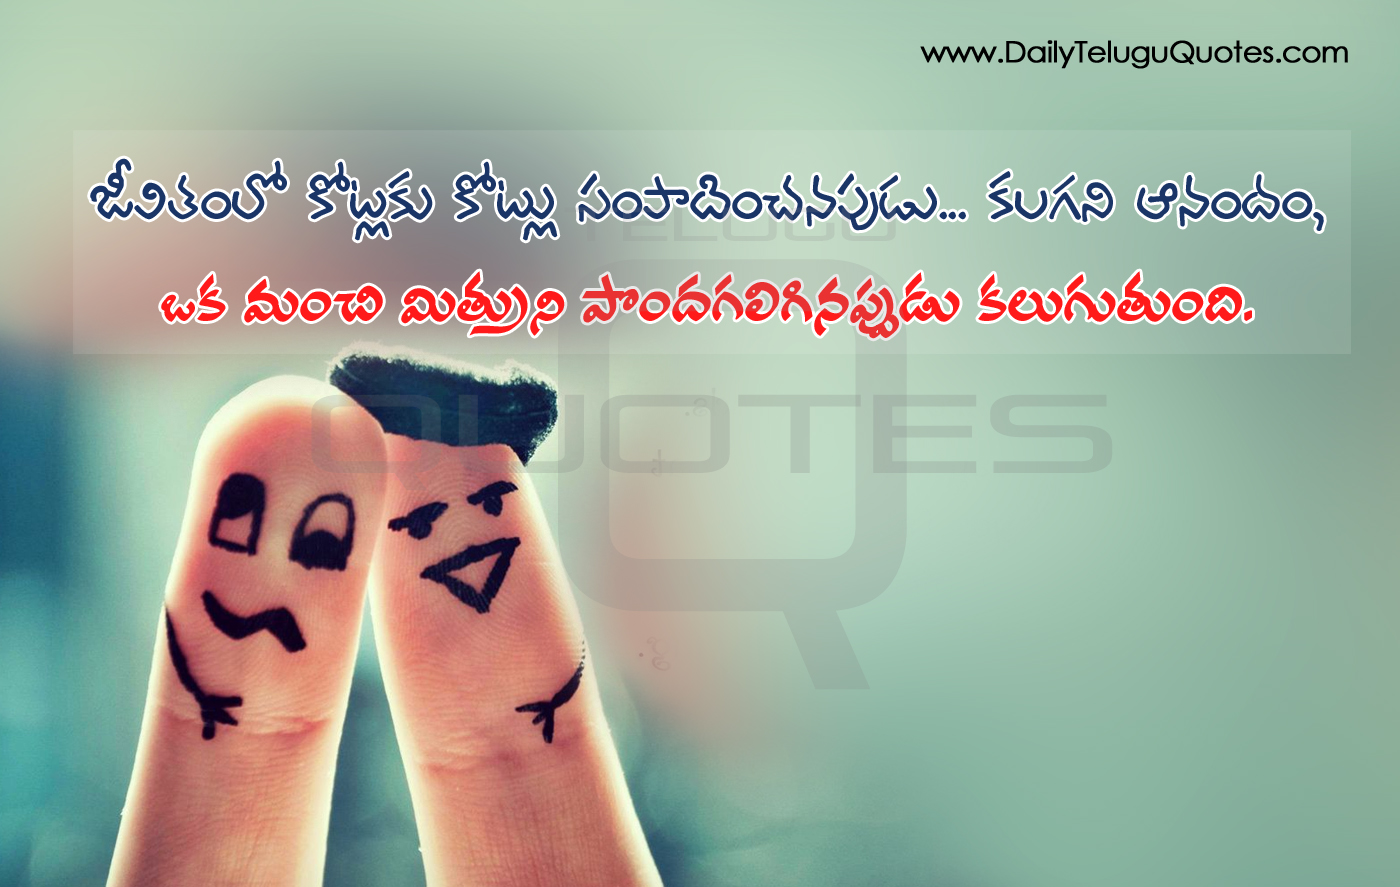 Raja Rani Movie Wallpapers With Quotes True Friendship Quotes And Wallpapers With Nice Telugu